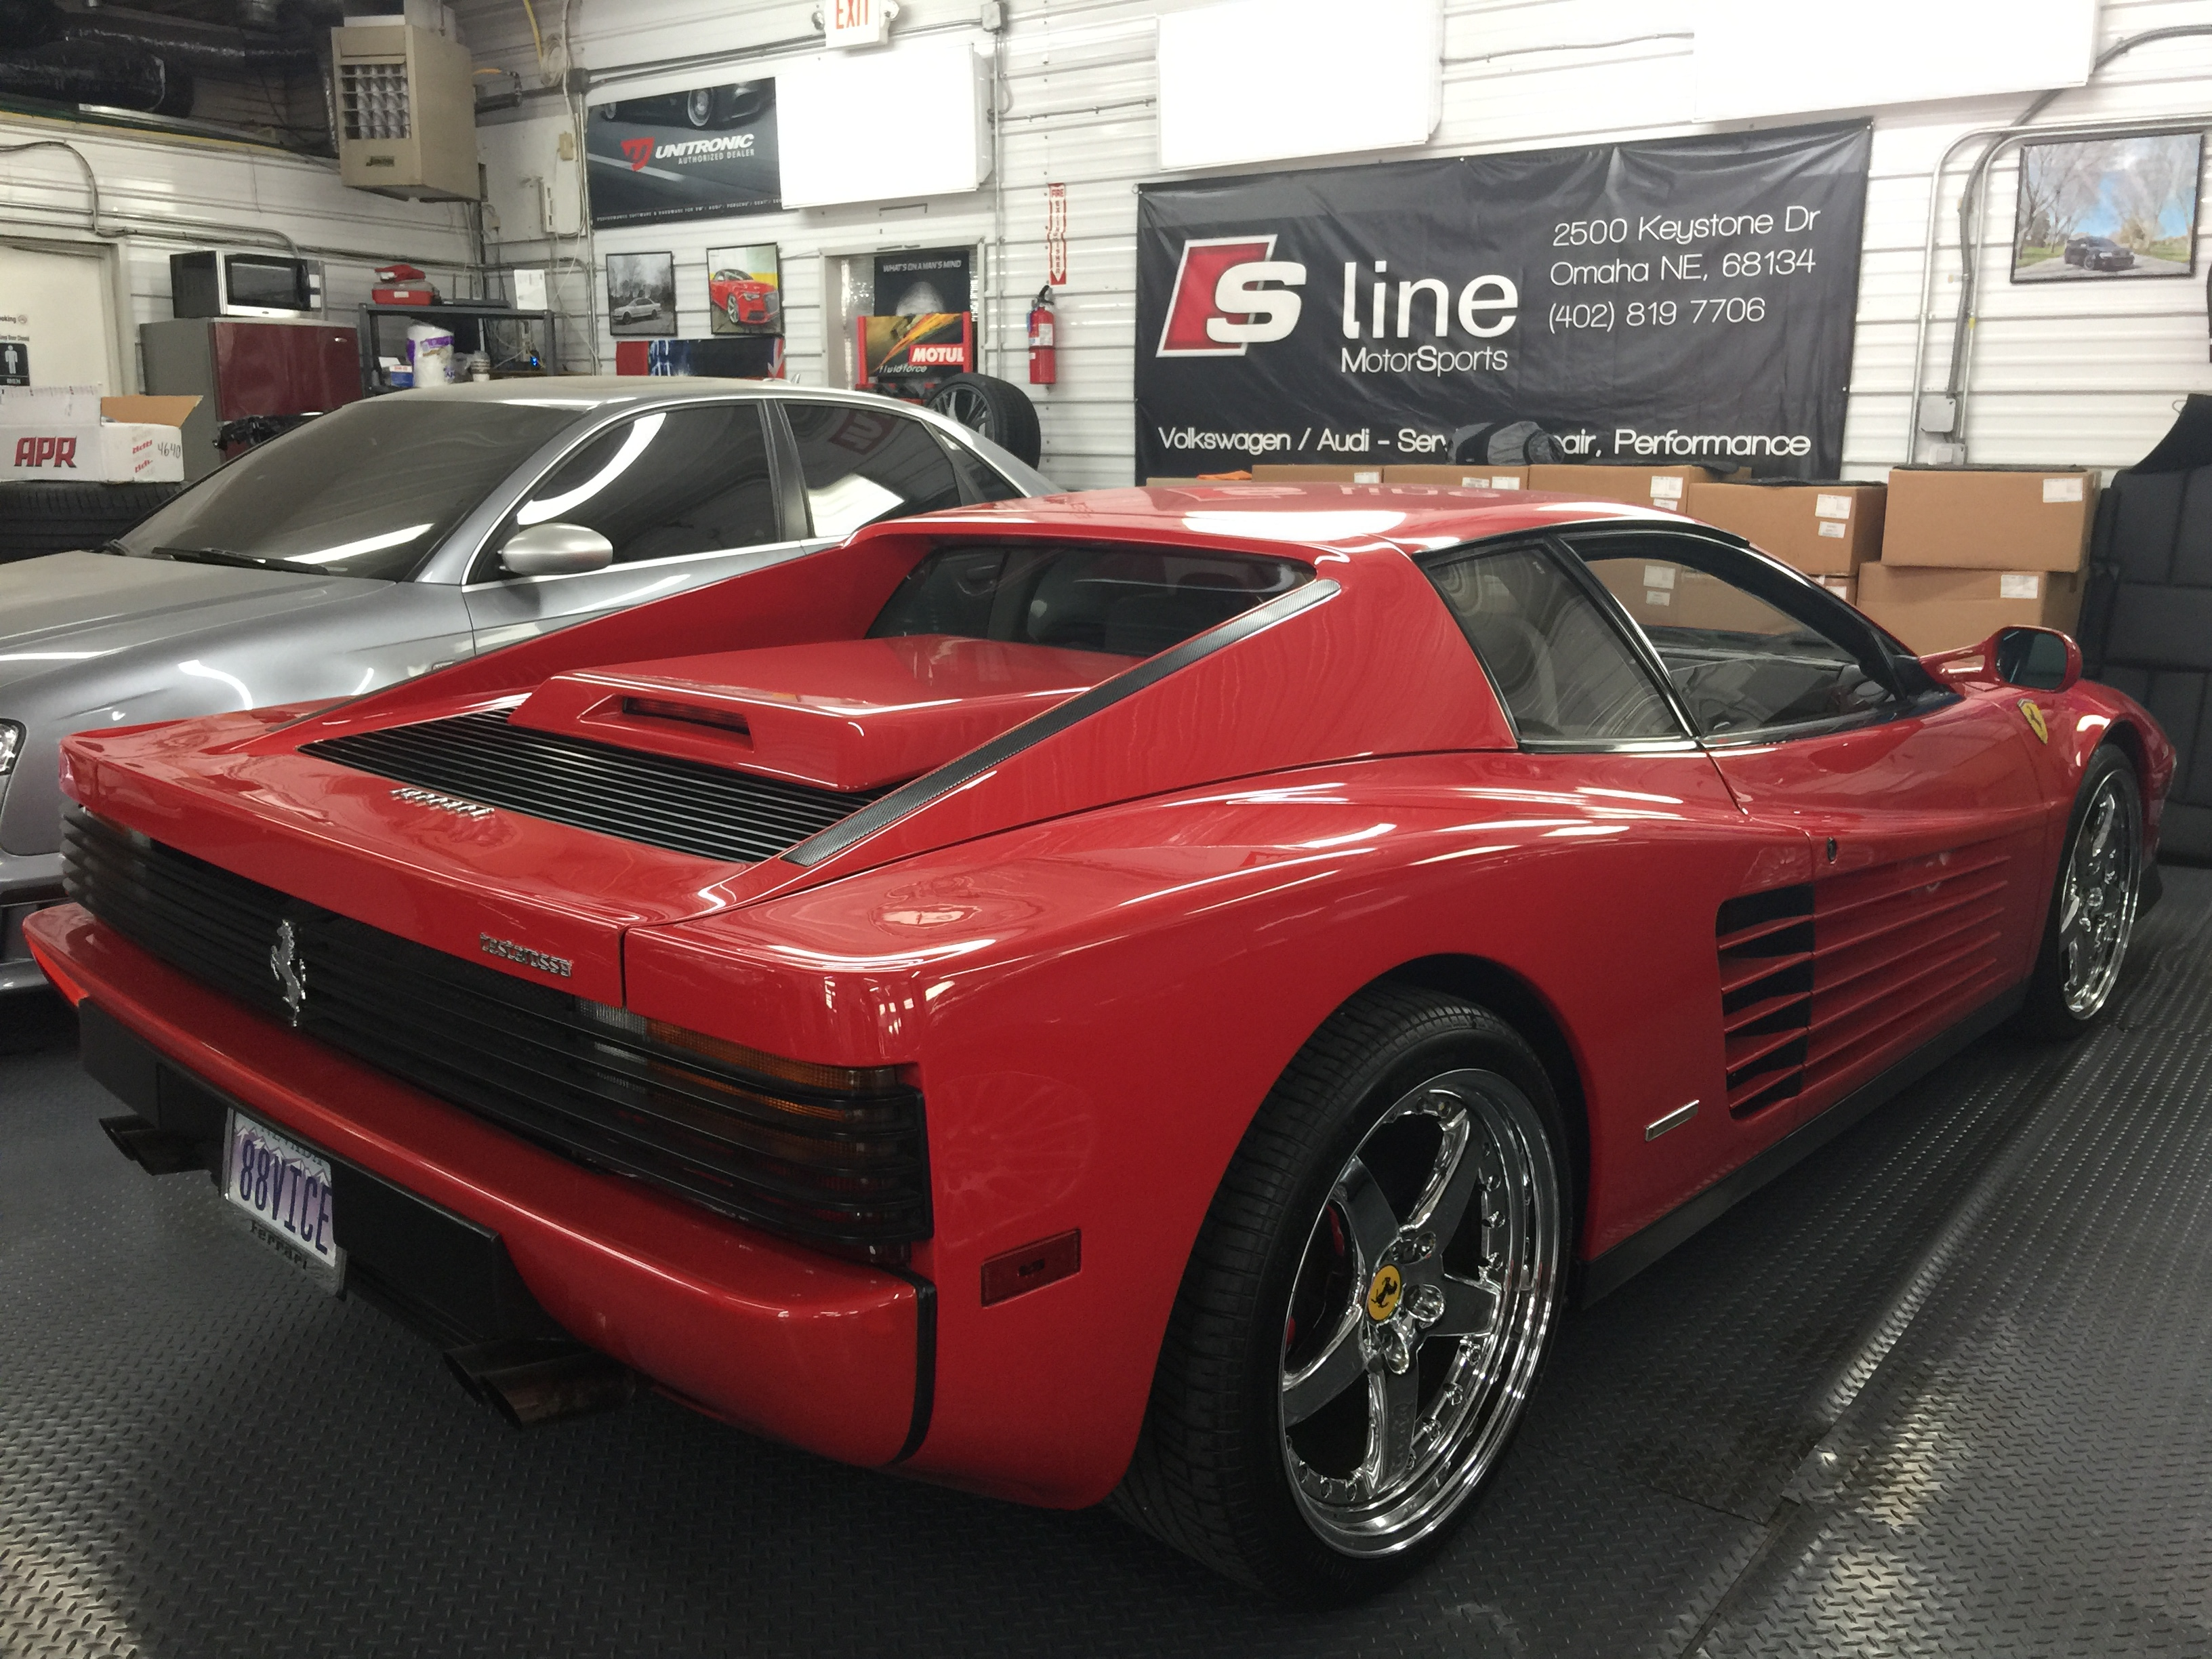 Cars For Sale Omaha Ne >> '88 Ferrari Testarossa - Fuel Leak Diagnosis - S Line Motorsports LLC